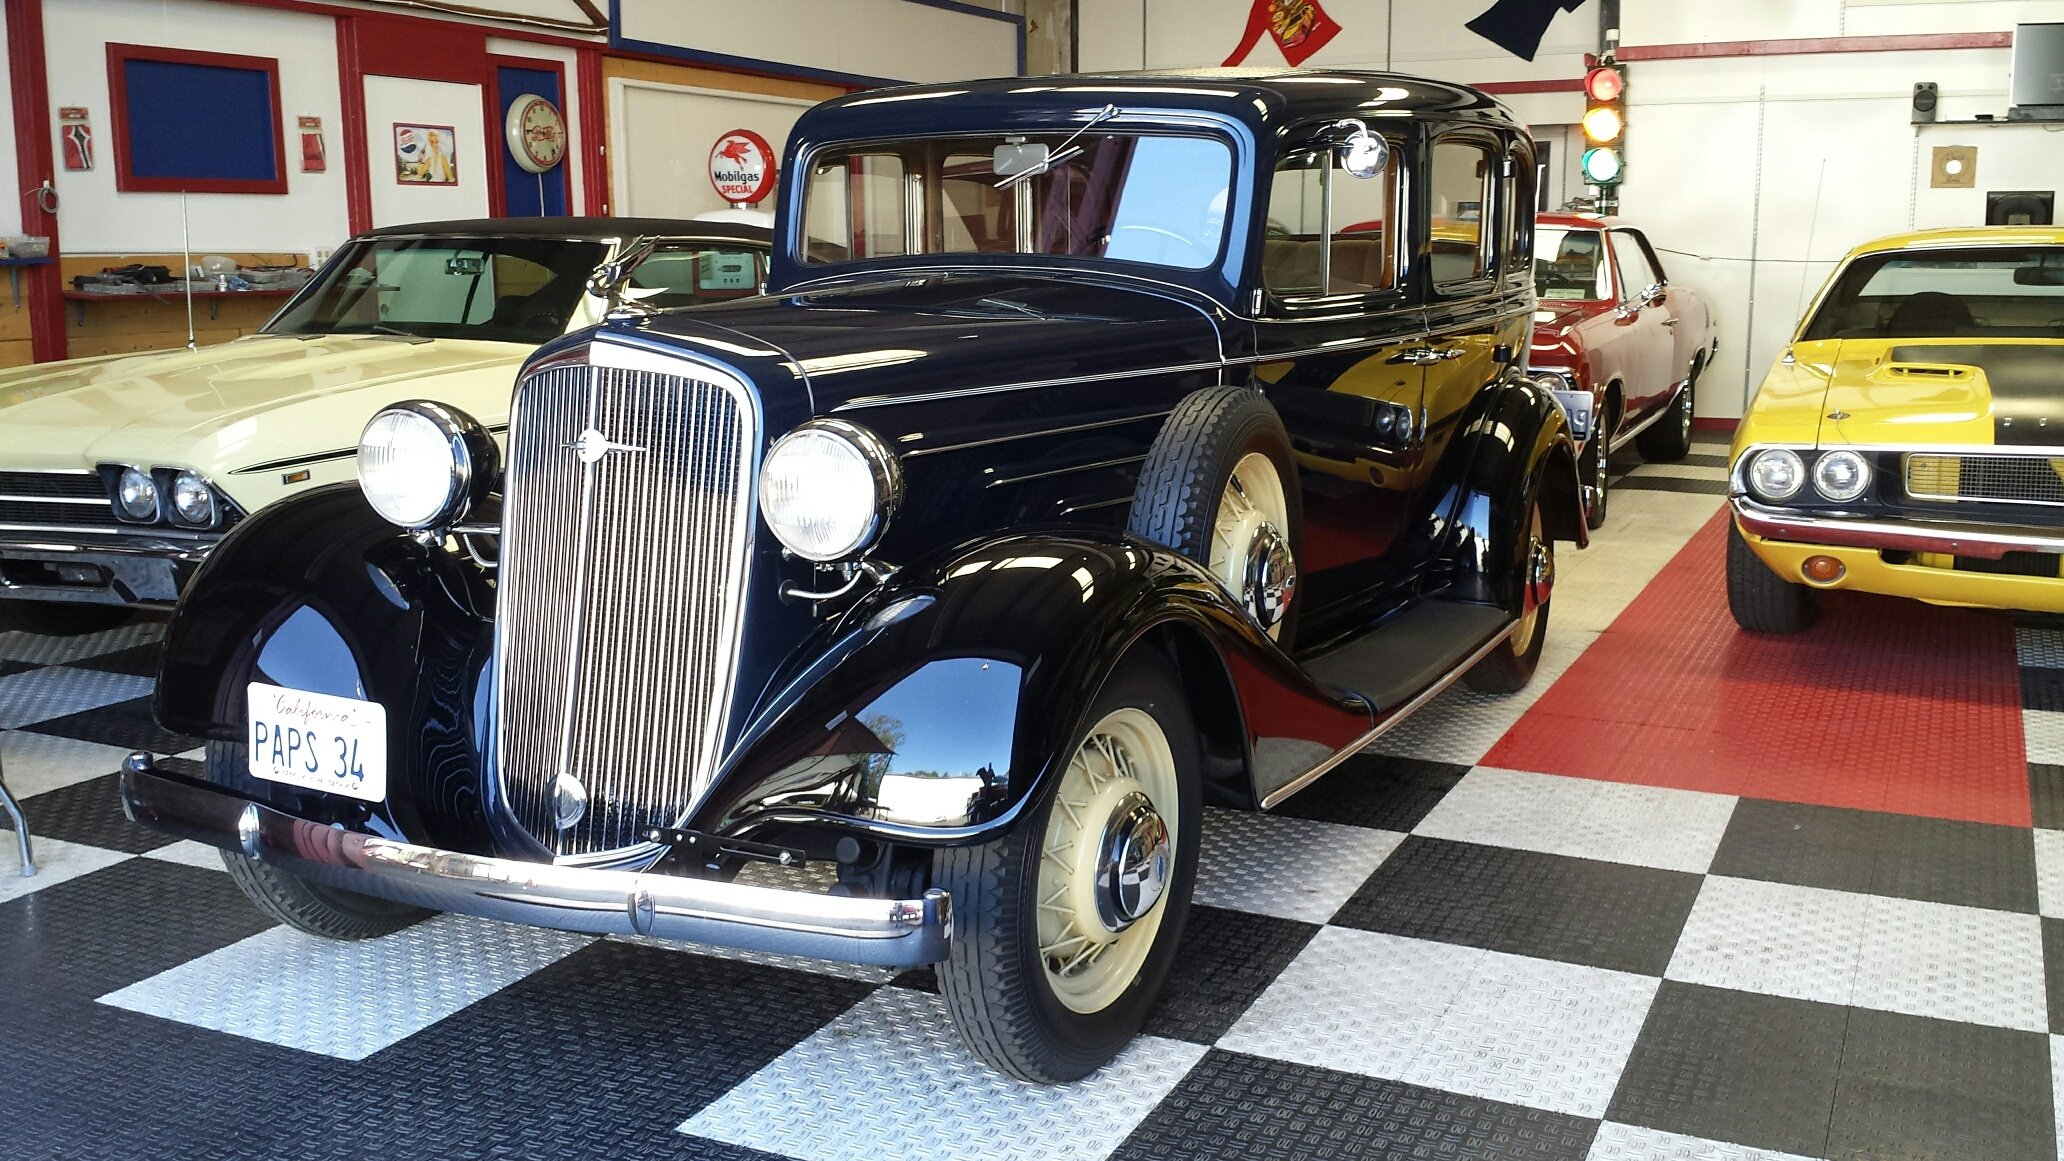 1934 Chevy Master Deluxe Buy Now Before Hard Brexit For Sale | Car